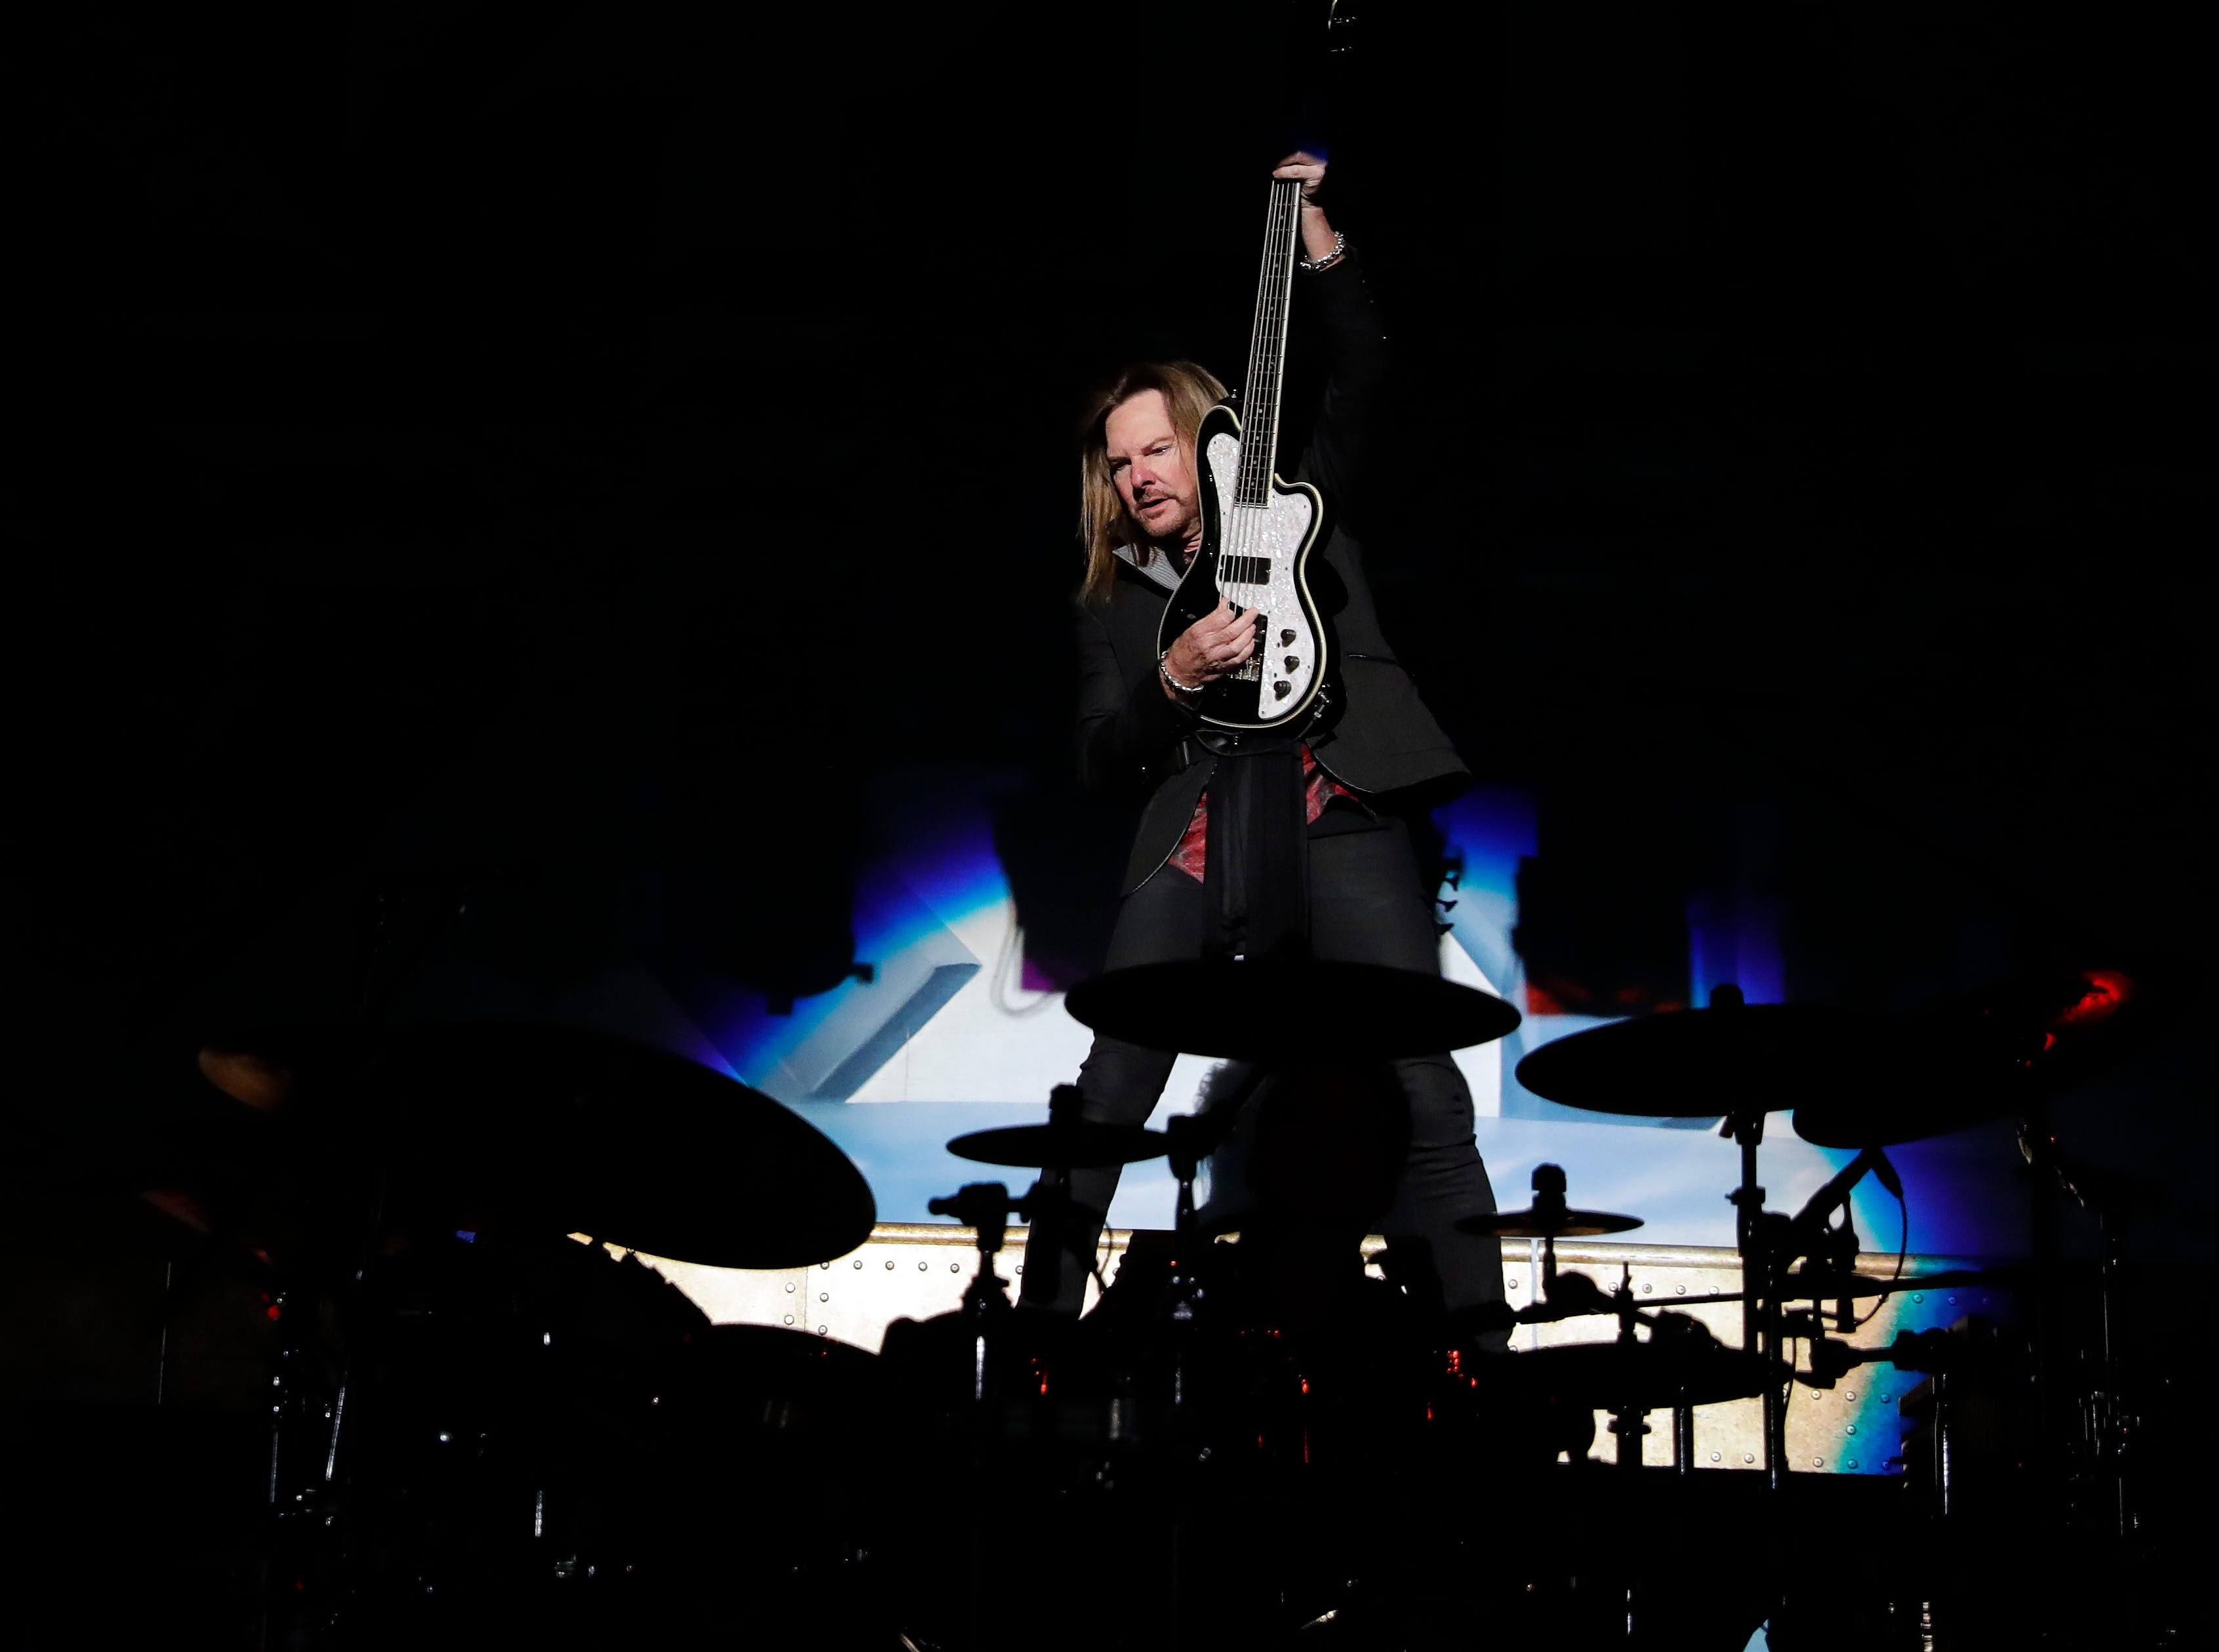 Ricky Phillips of Styx performs Dec. 29, 2018 at the Resch Center in Ashwaubenon, Wis.